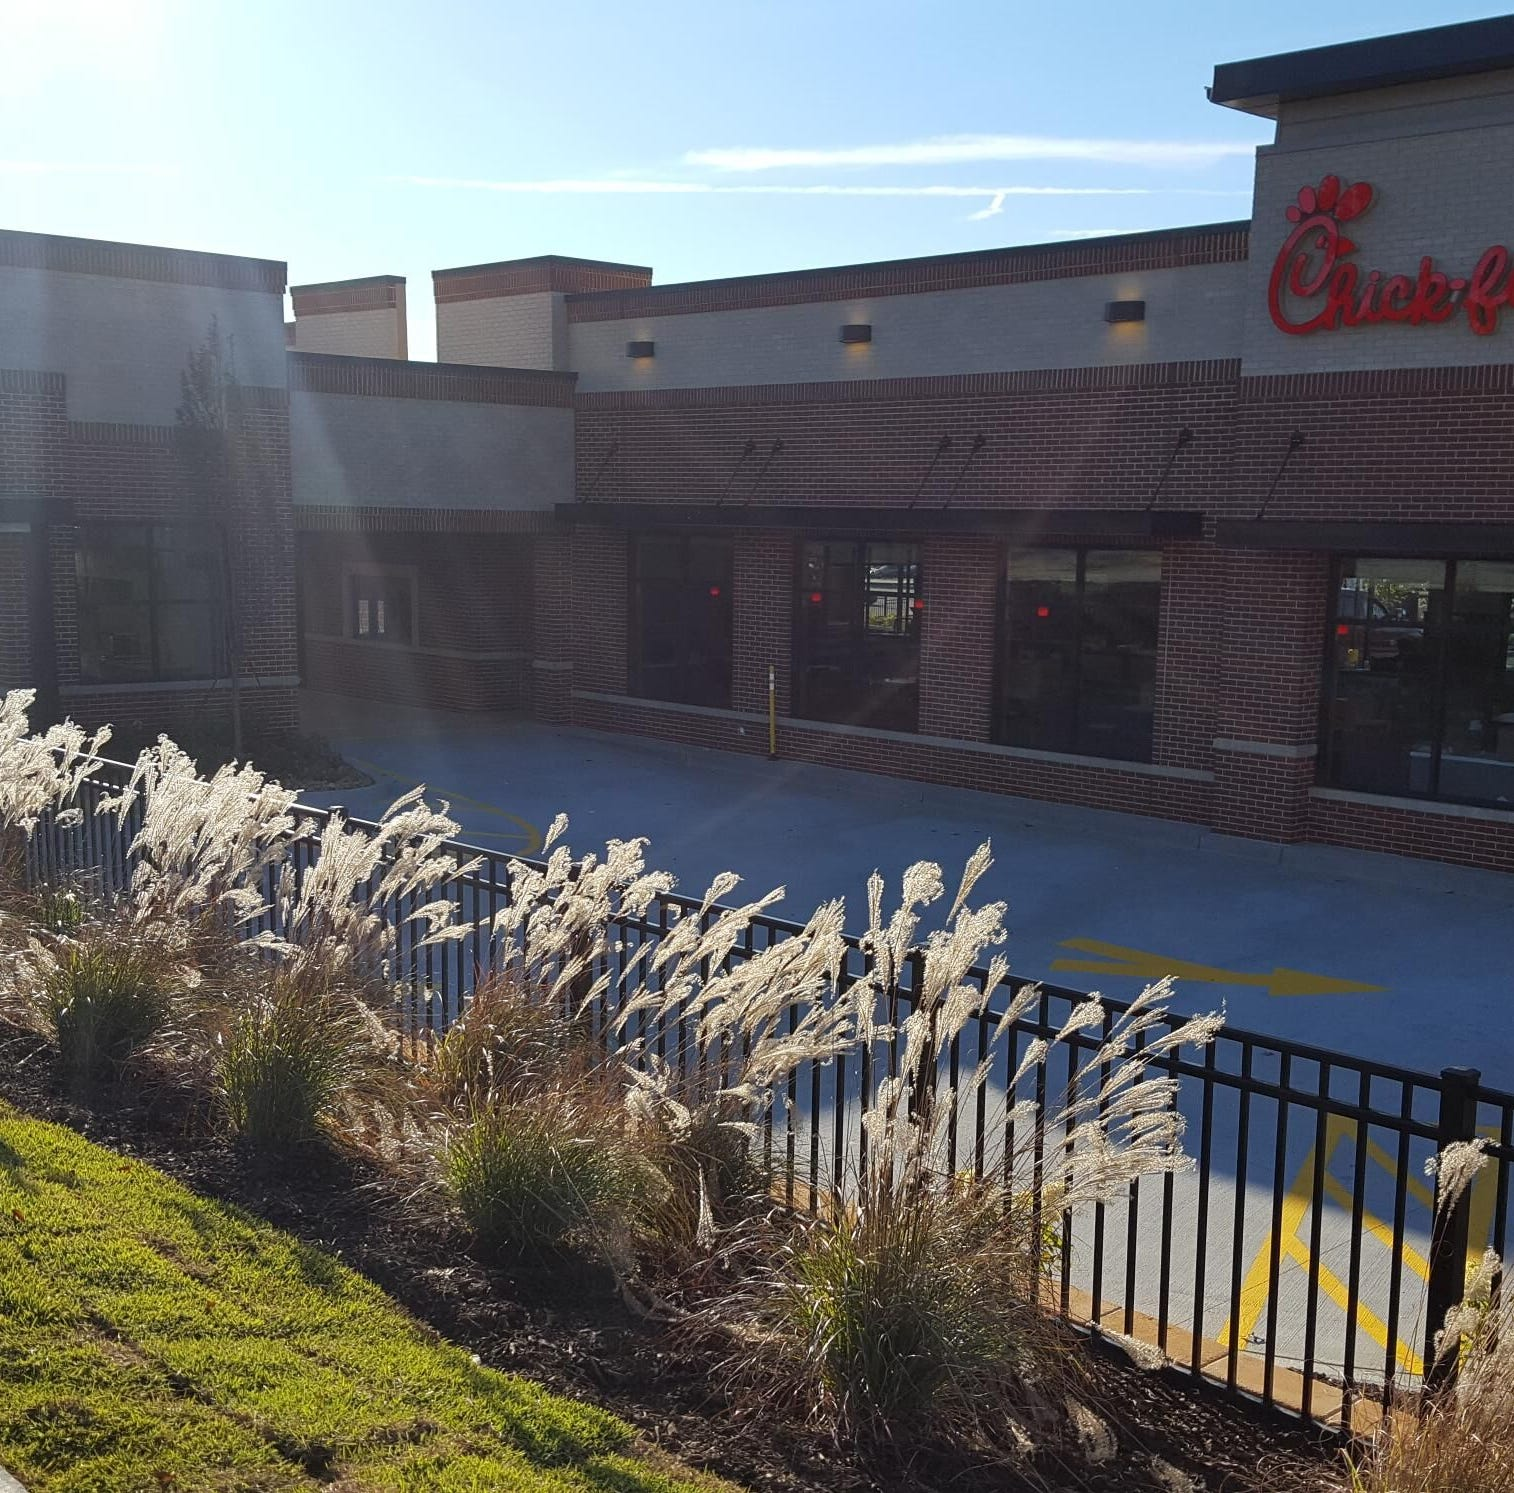 After 4 months, the Chick-fil-A will reopen with a bigger, better and updated look